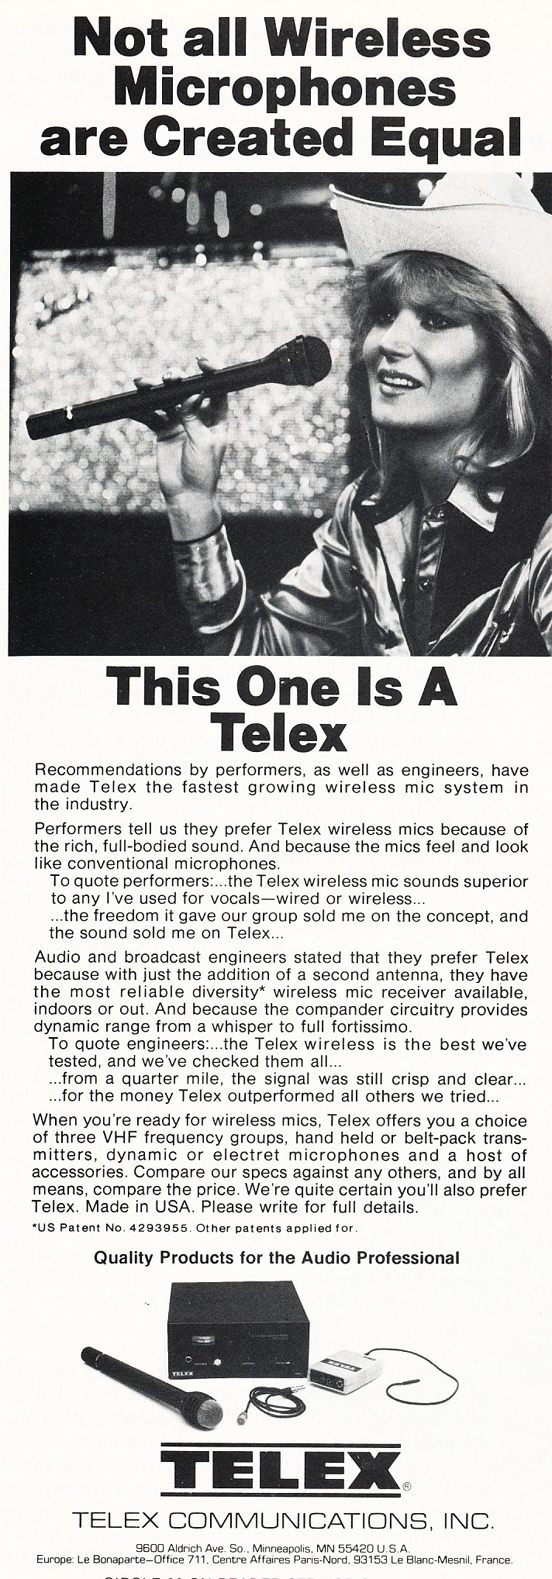 1983 ad for Telex in the Reel2ReelTexas.com vintage recording collection